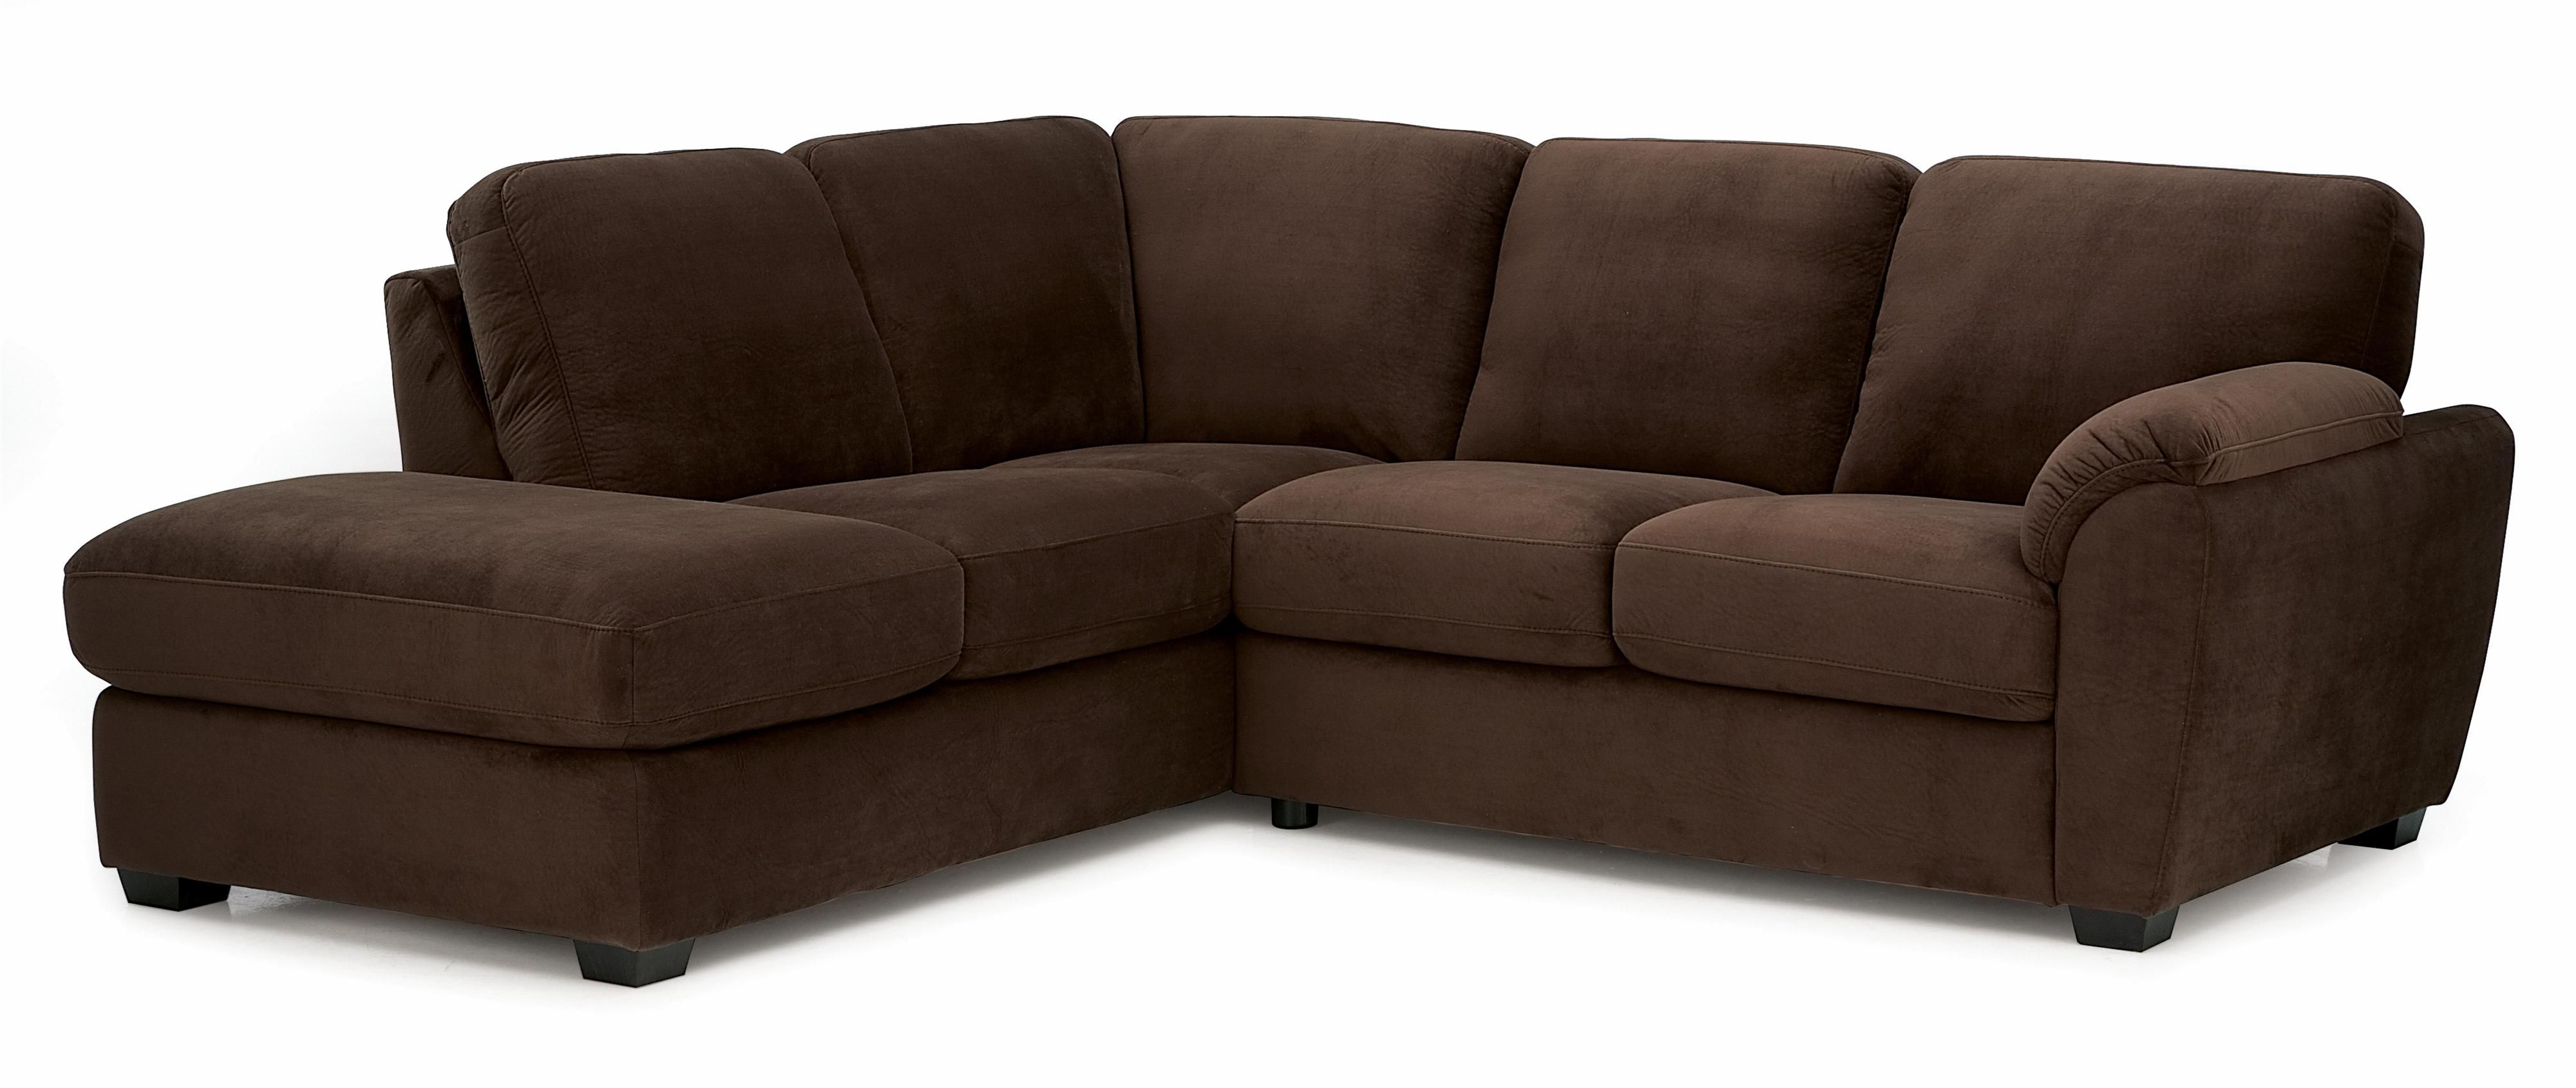 Best Lanza Two Piece Sectional Sofa With Rhf Chaise By Palliser 400 x 300